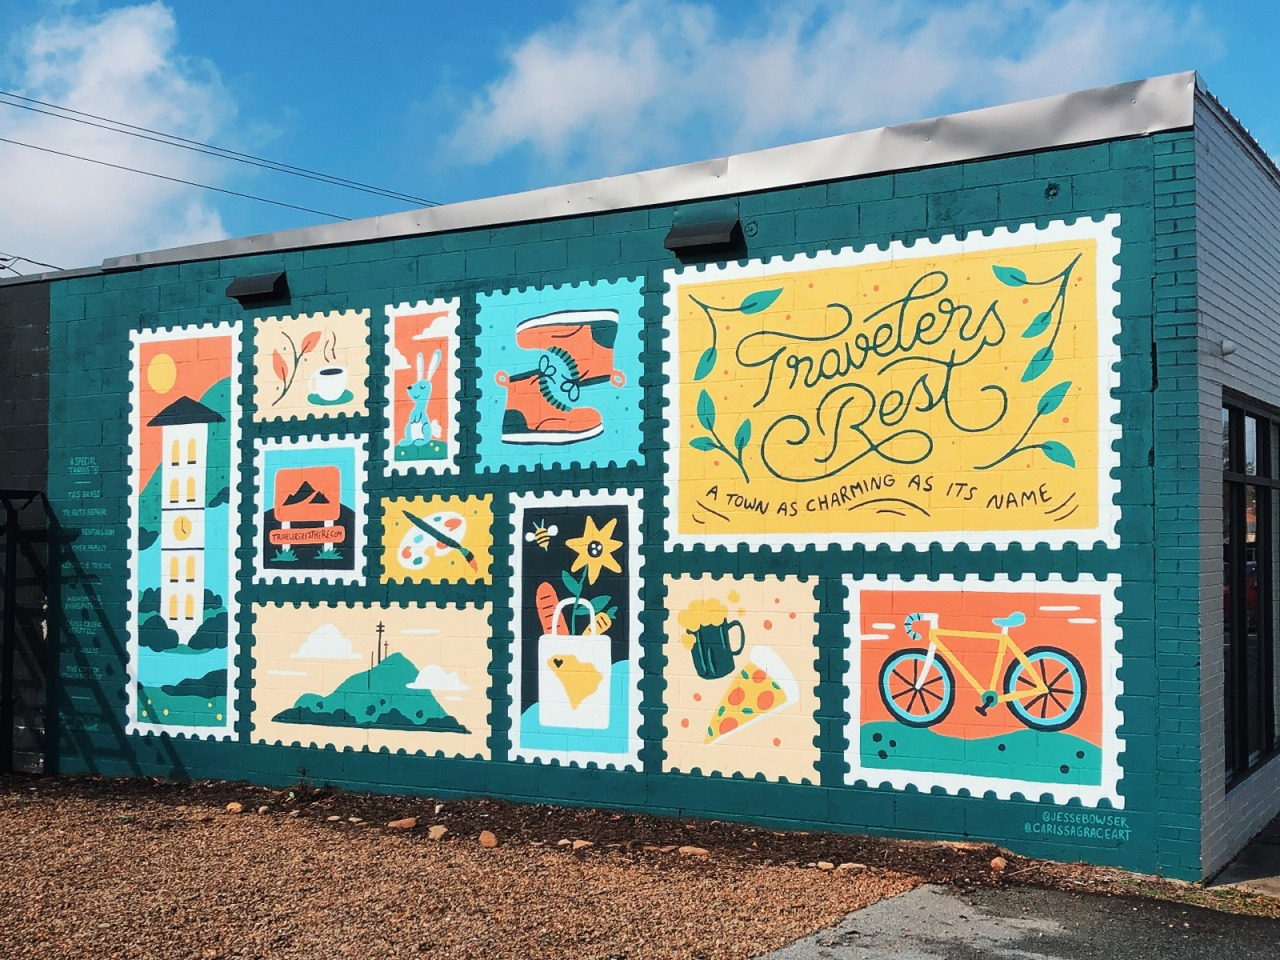 Travelers Rest Mural handmade type south carolina town wall mountain food bike boots illustration mural design lettering postage stamp stamp mural #dribbble#bike#boots#food#handmade#illustration#lettering#mountain#mural#mural design#postage stamp#south carolina#stamp#town#type#wall